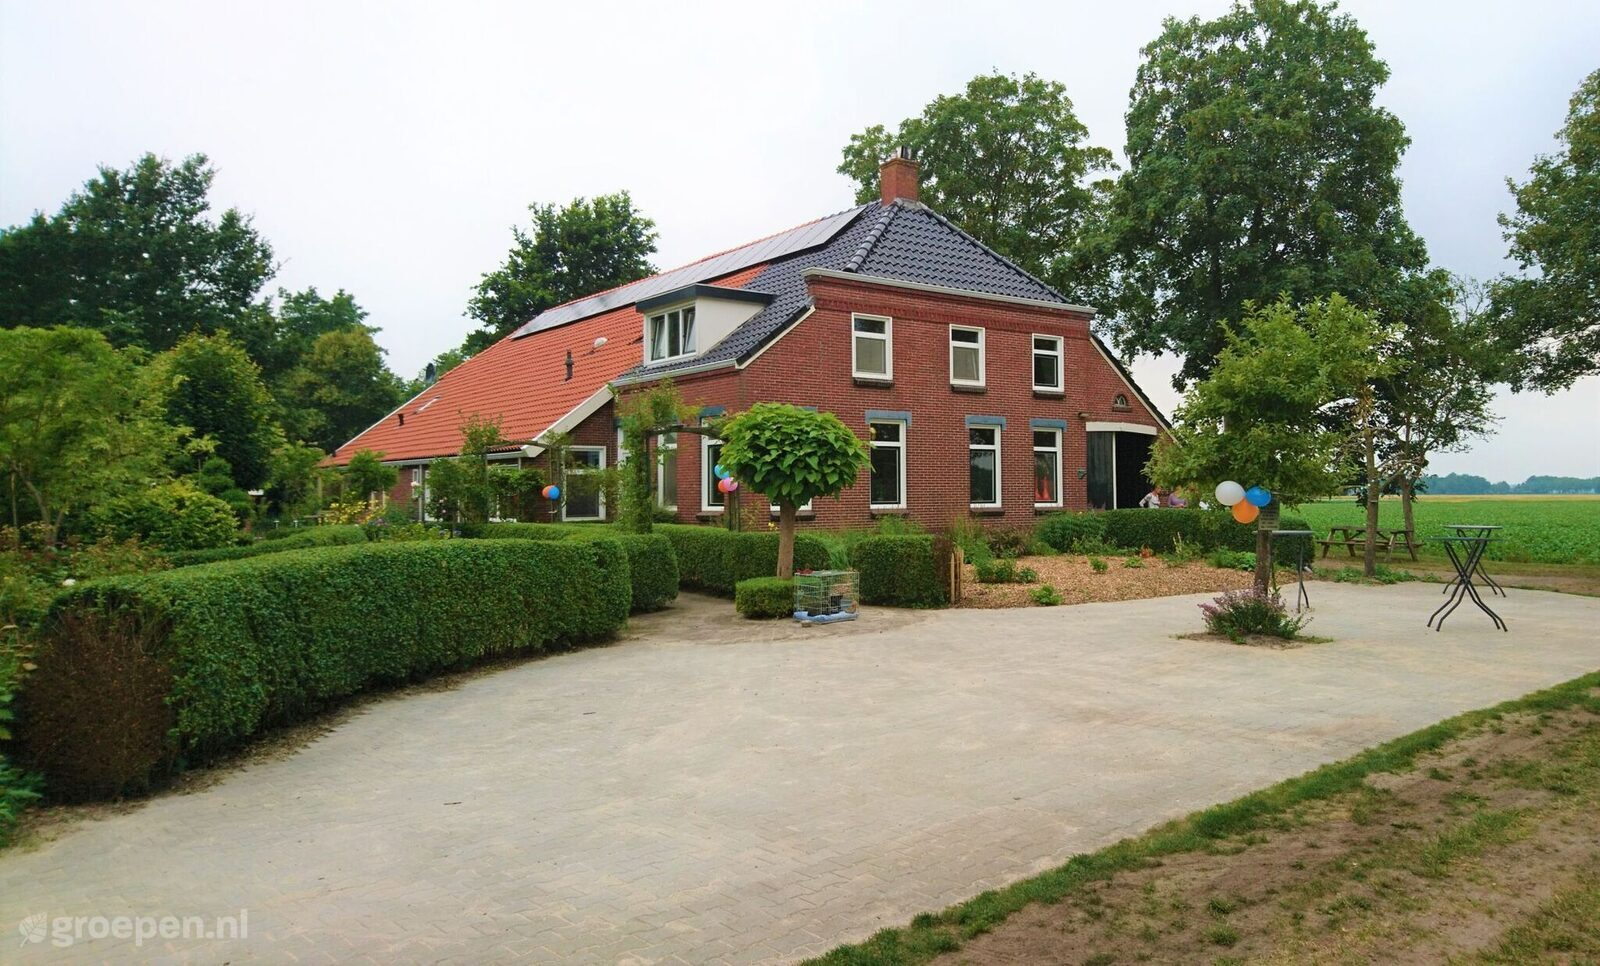 Group accommodation Wedde